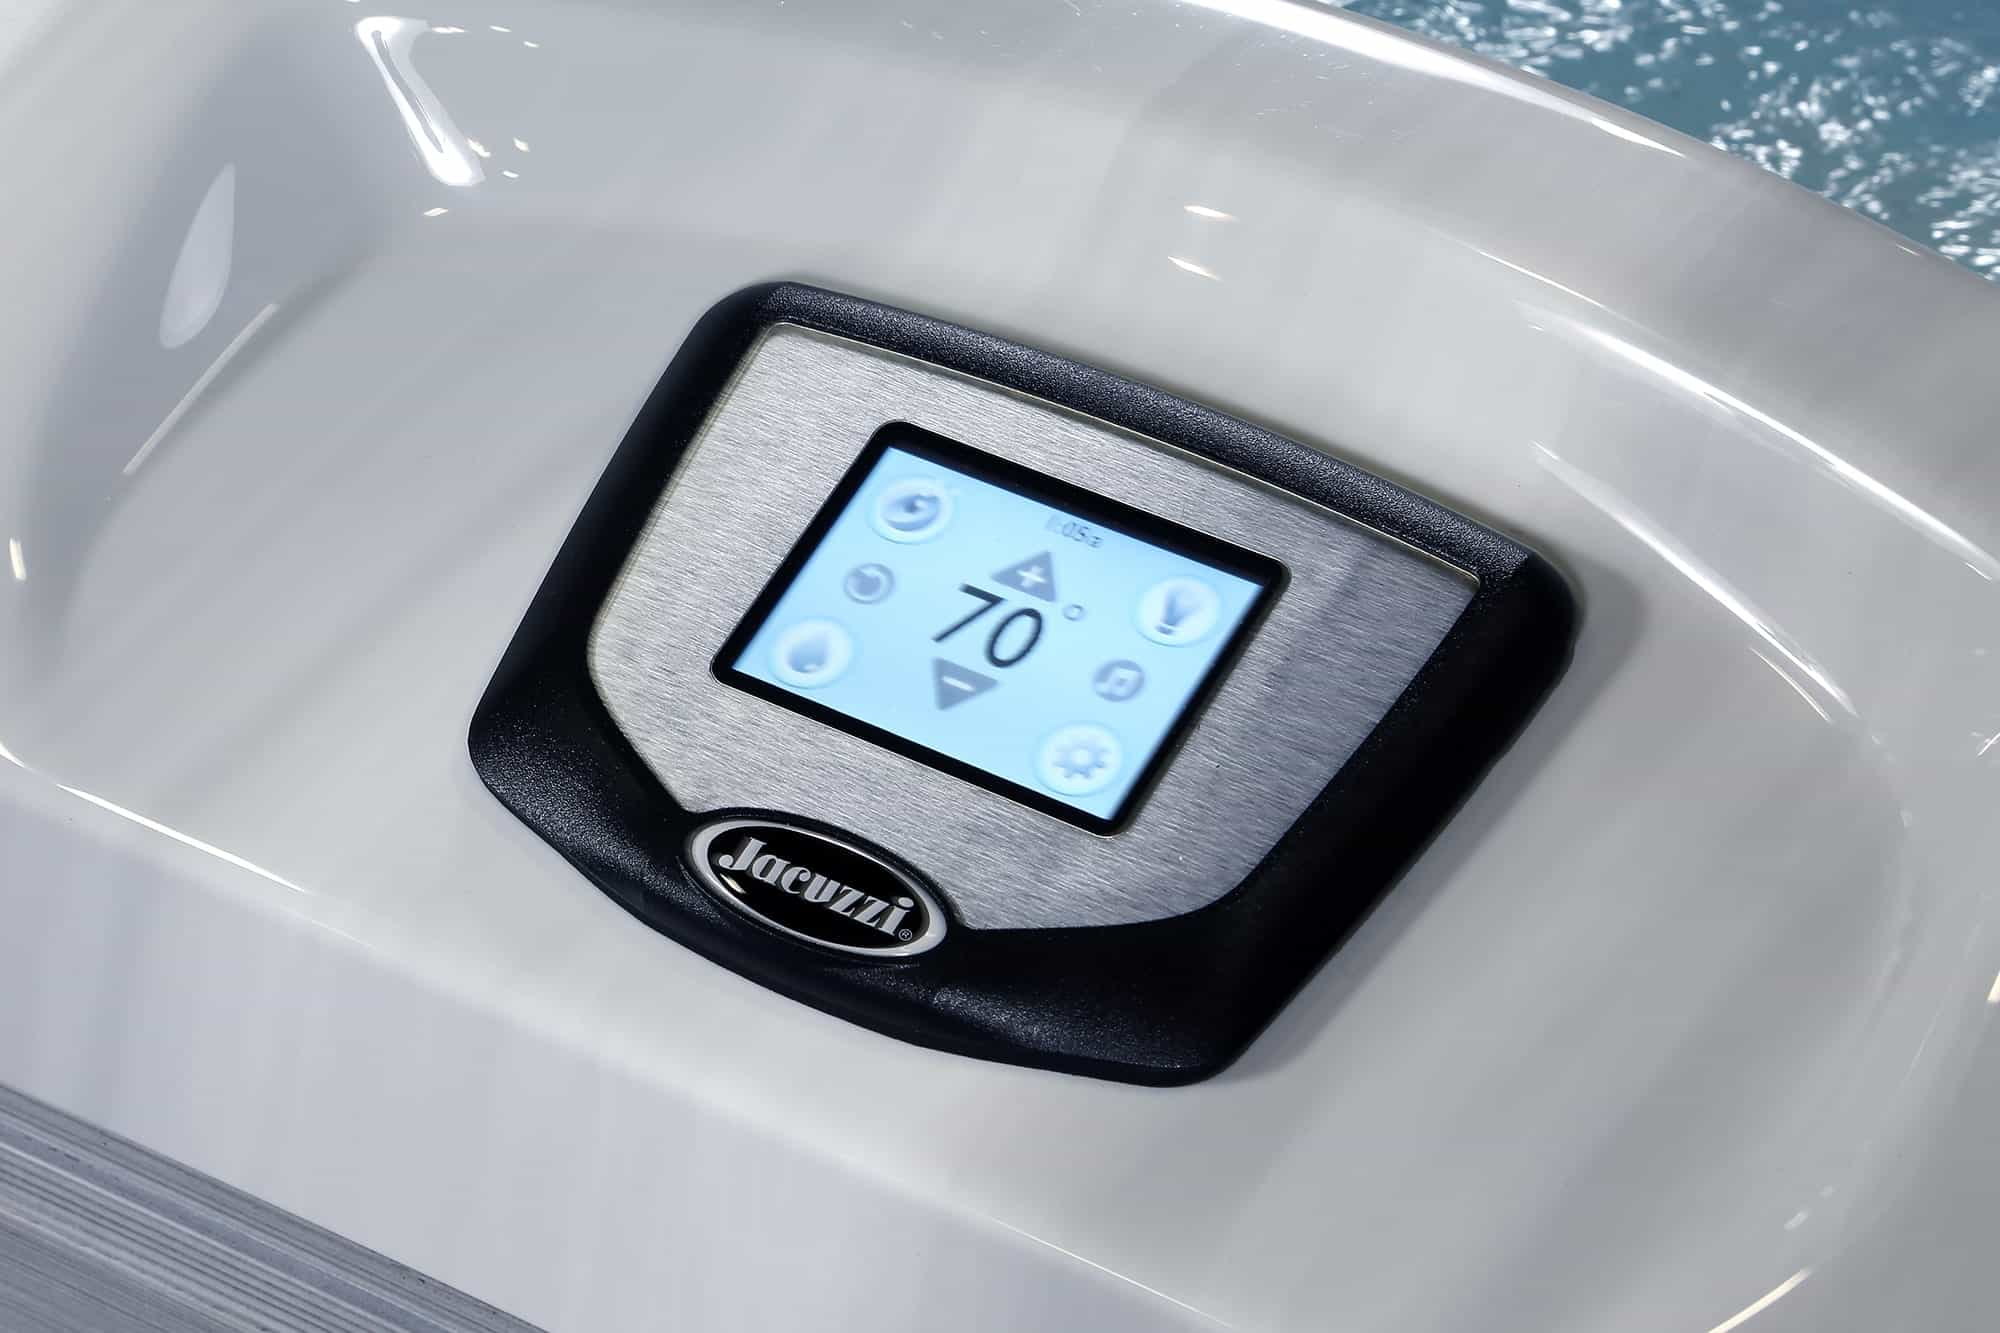 Jacuzzi Hot Tubs J-400 Collection Control Panel in Ontario